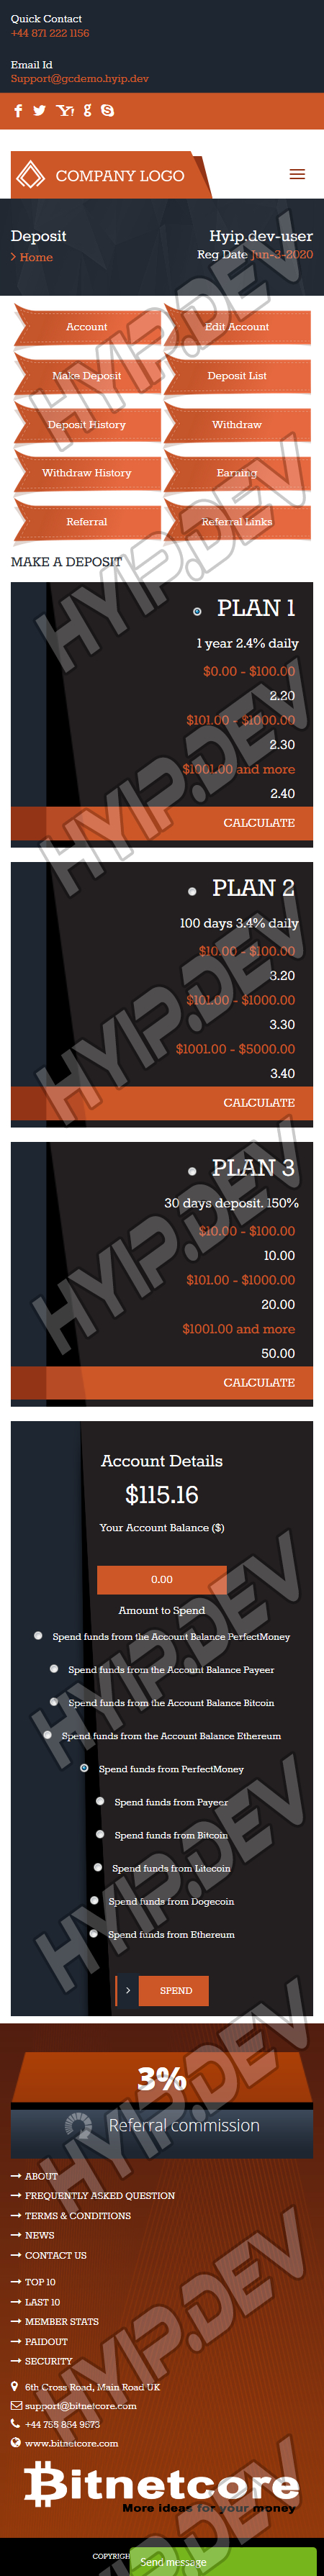 goldcoders hyip template no. 076, mobile page screenshot